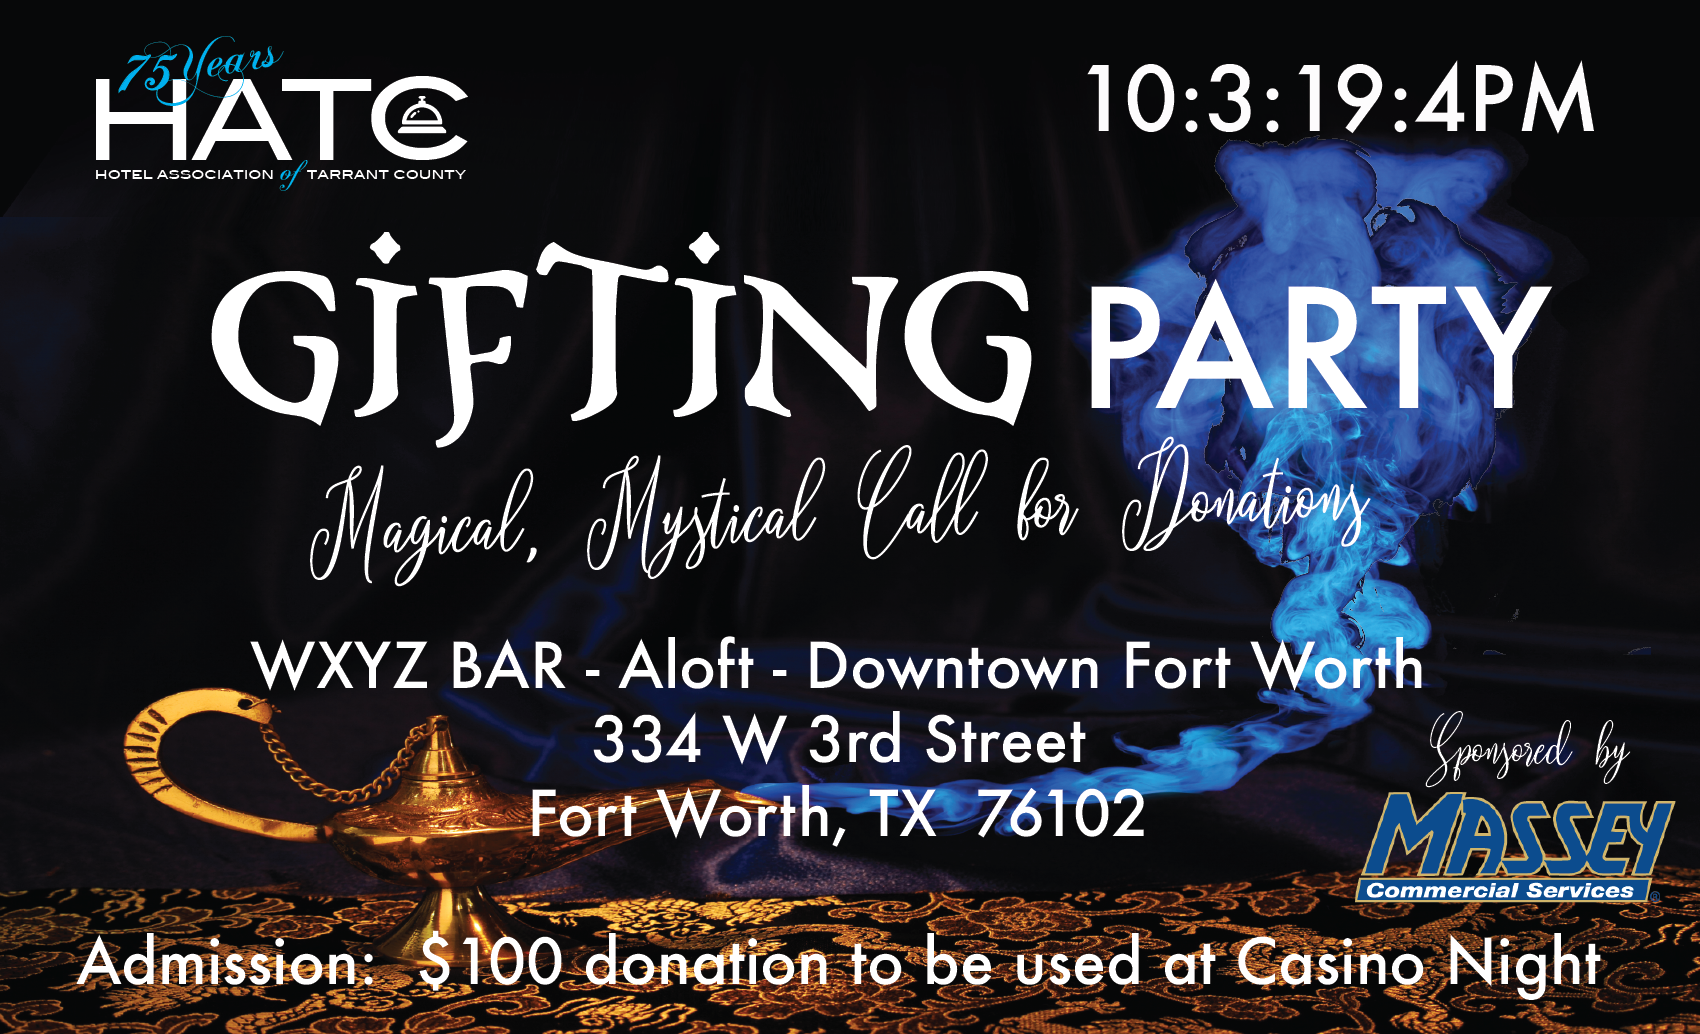 HATC Casino Arabian Nights Gifting Party 2019